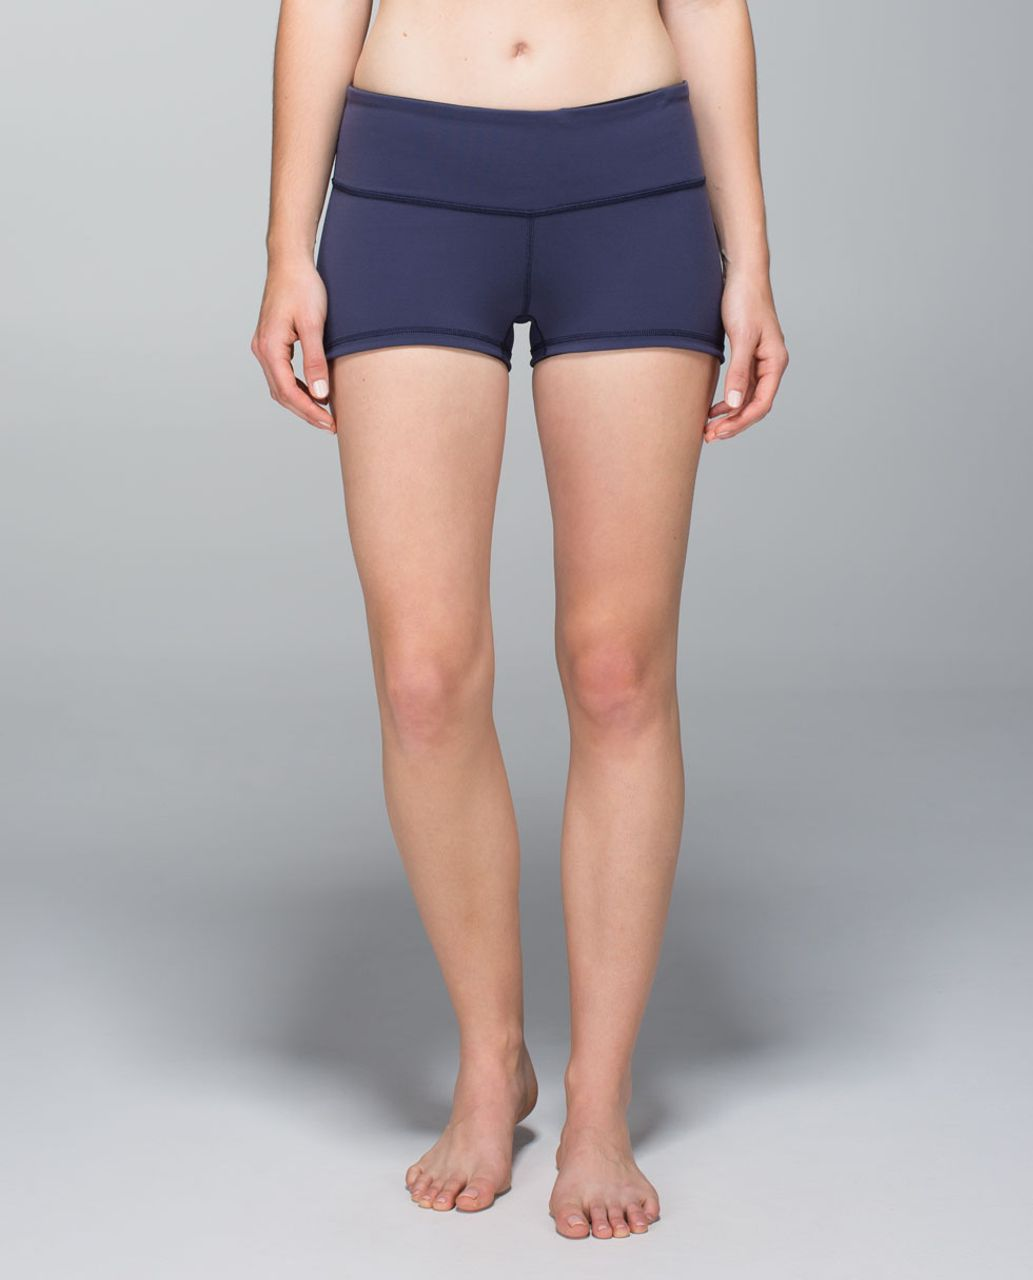 Lululemon Boogie Short - Cadet Blue / Black